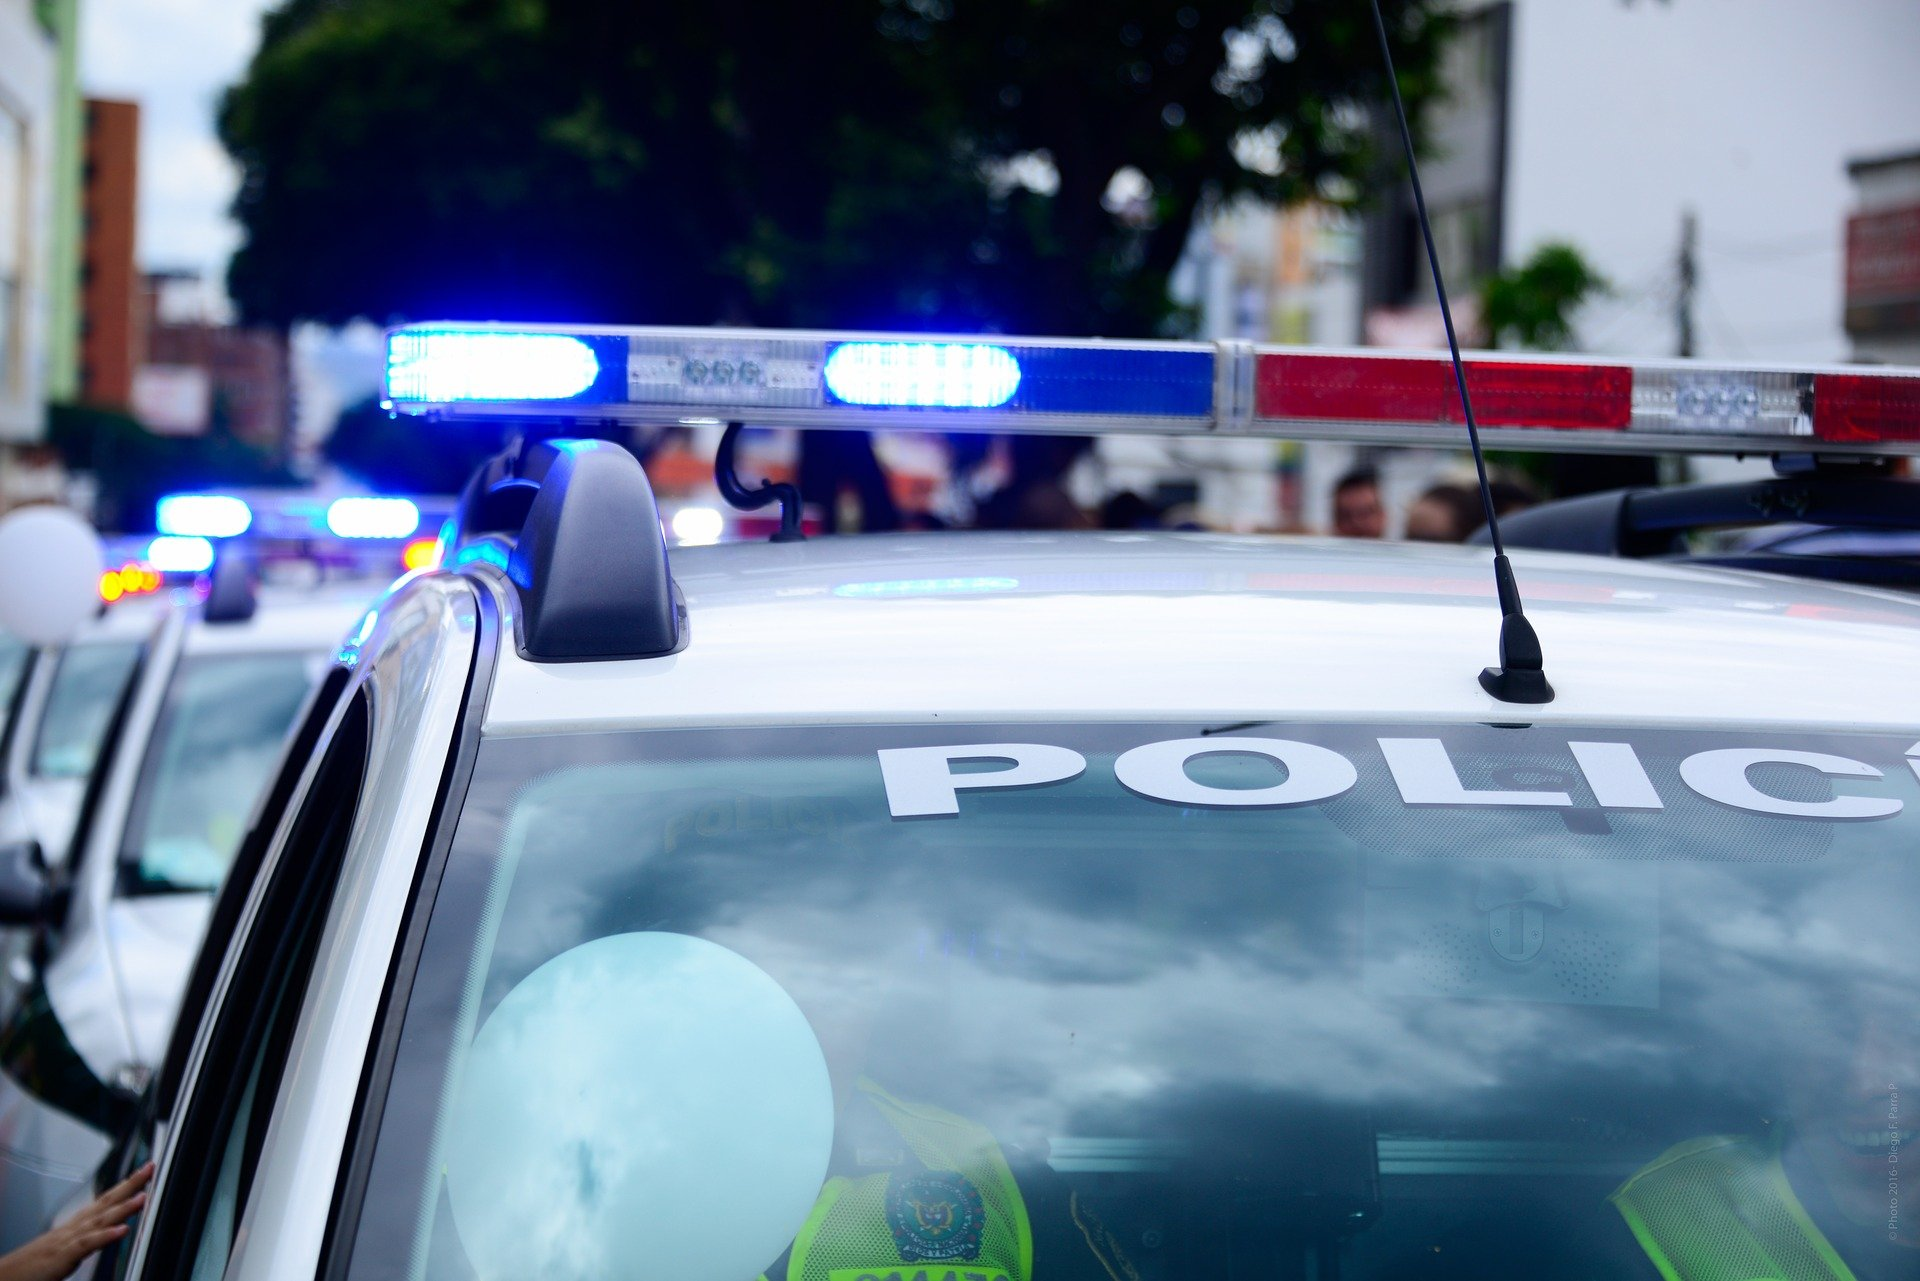 Police vehicles with blue lights sirens | Photo: Pixabay